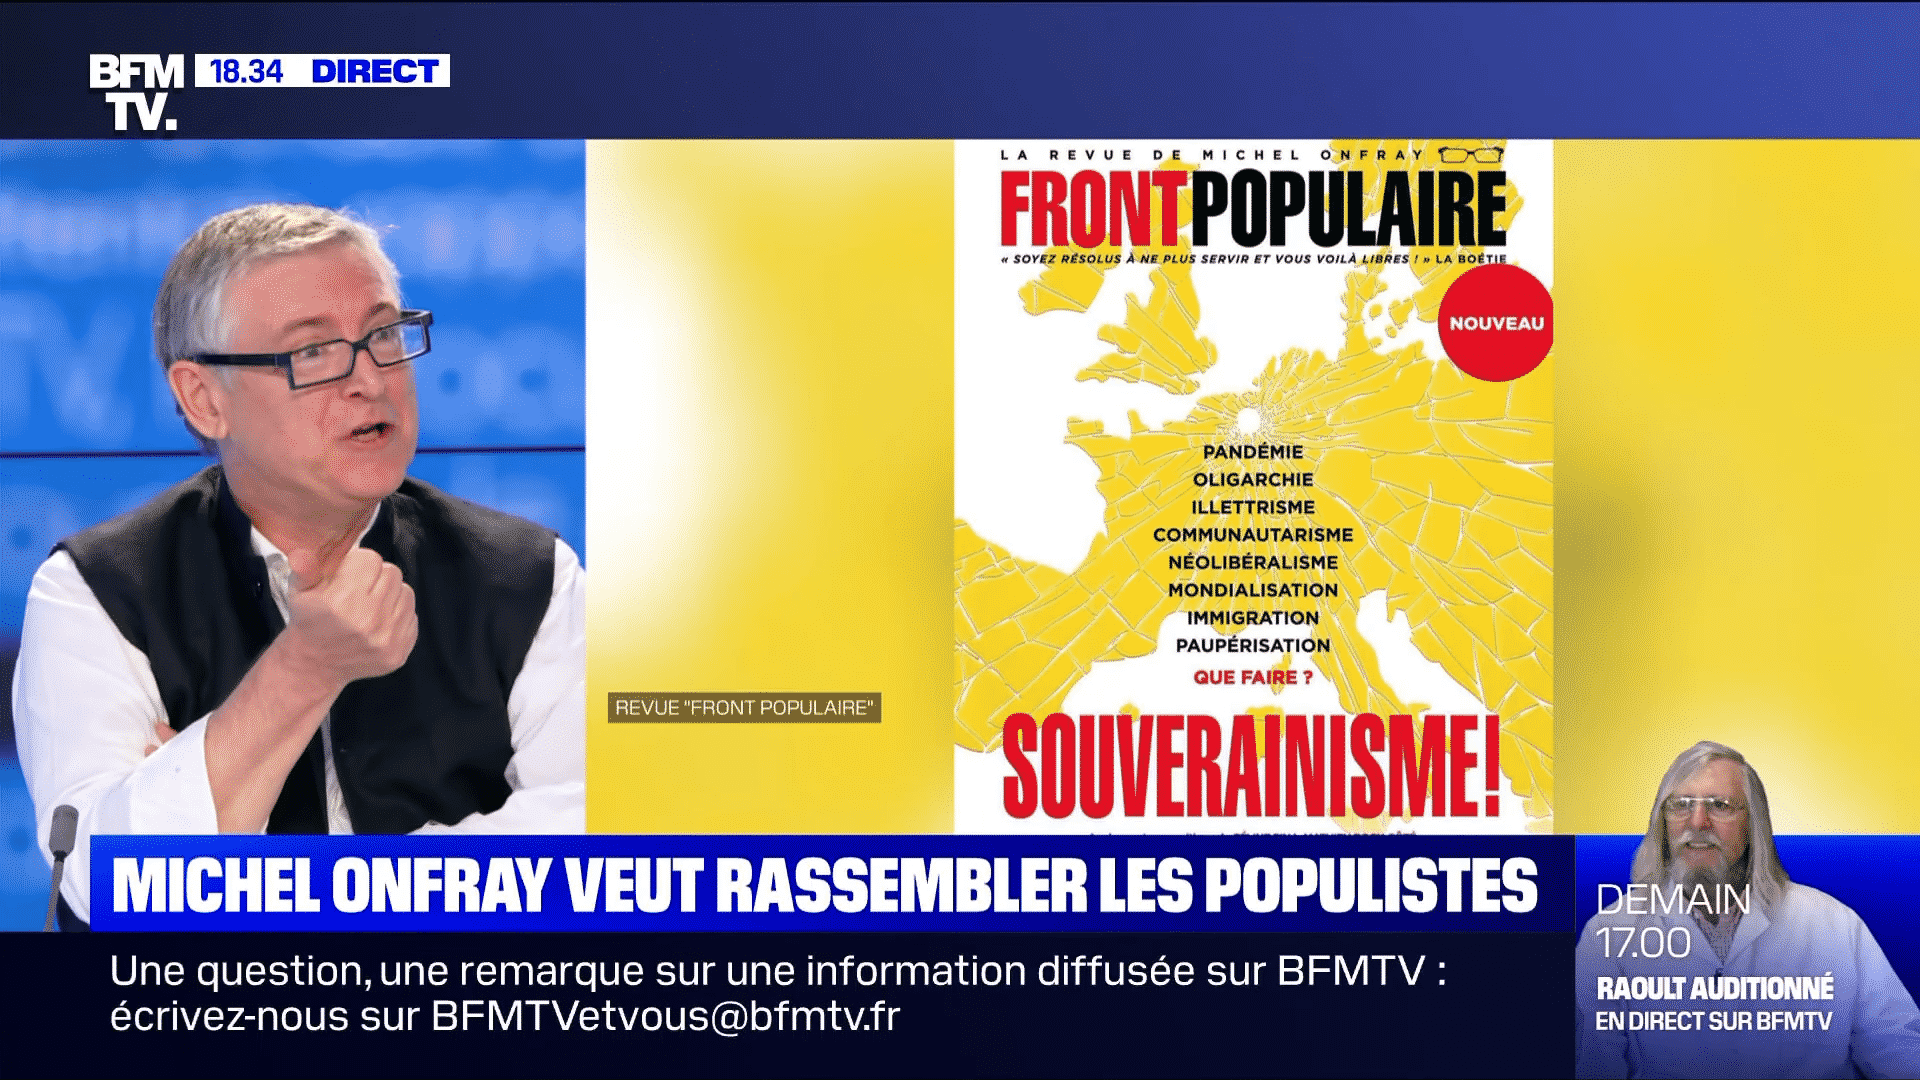 https://planetes360.fr/wp-content/uploads/2020/06/29-Revue-Front-populaire-violences-policières-affaire-Fillon-Entretien-de-Michel-Onfray-sur-BFMTV-YouTube.png